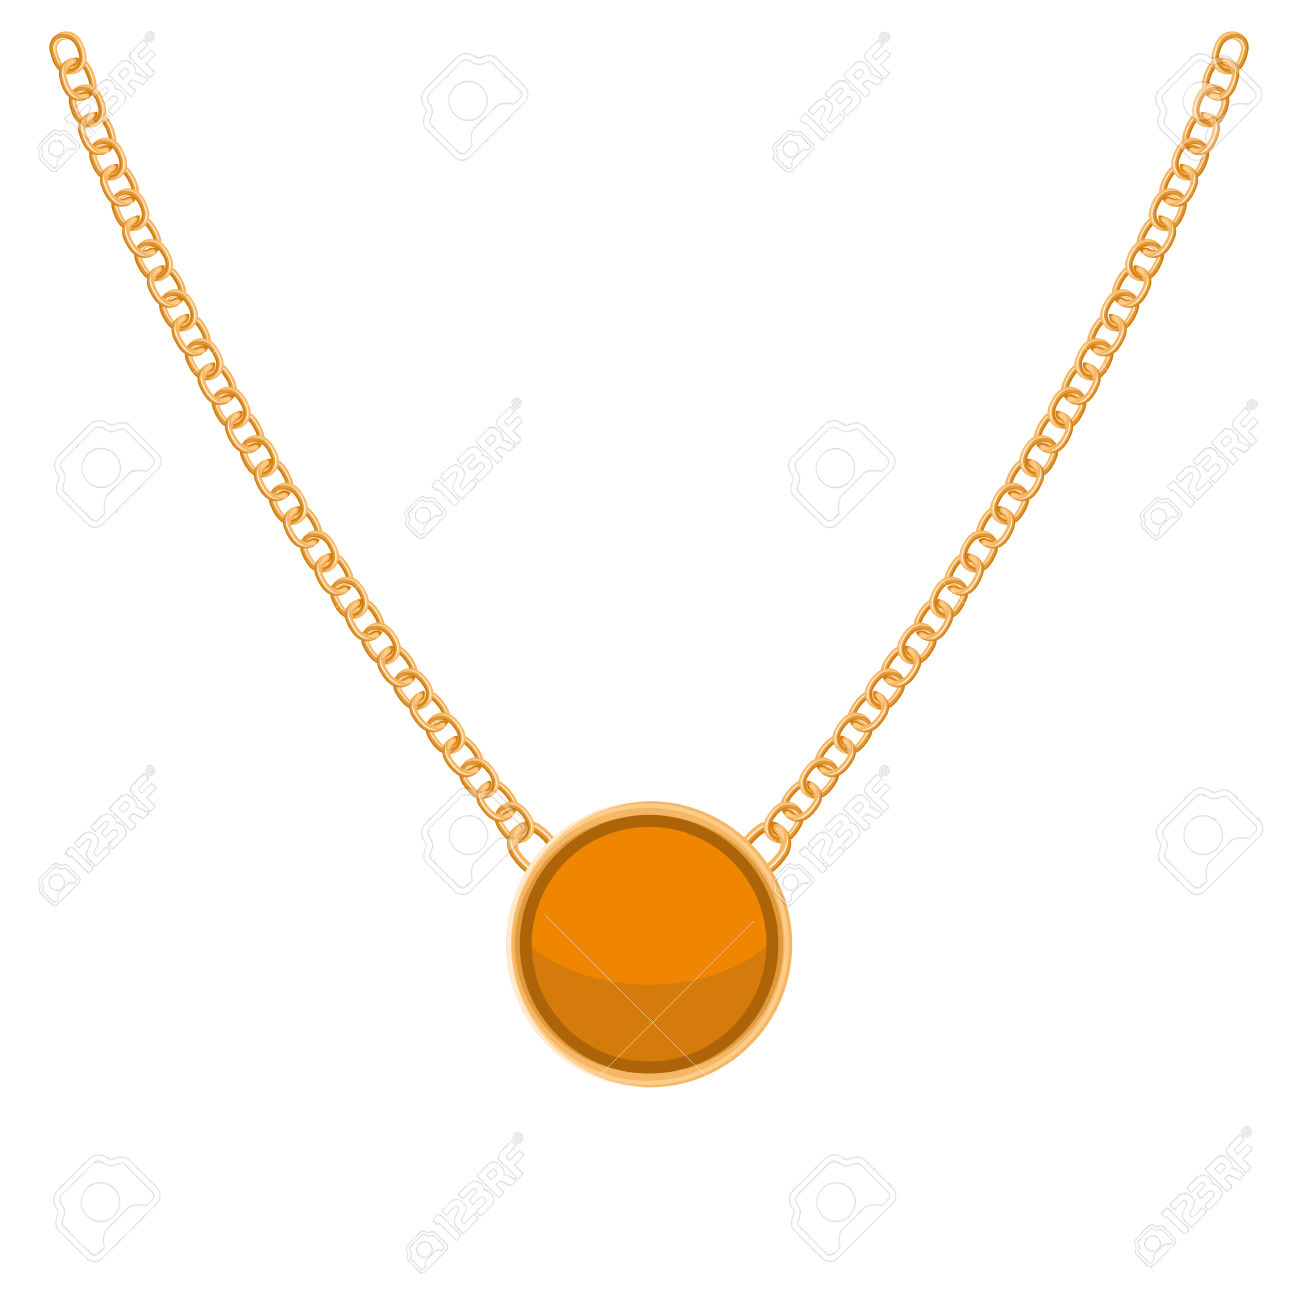 Collection of Necklace clipart.